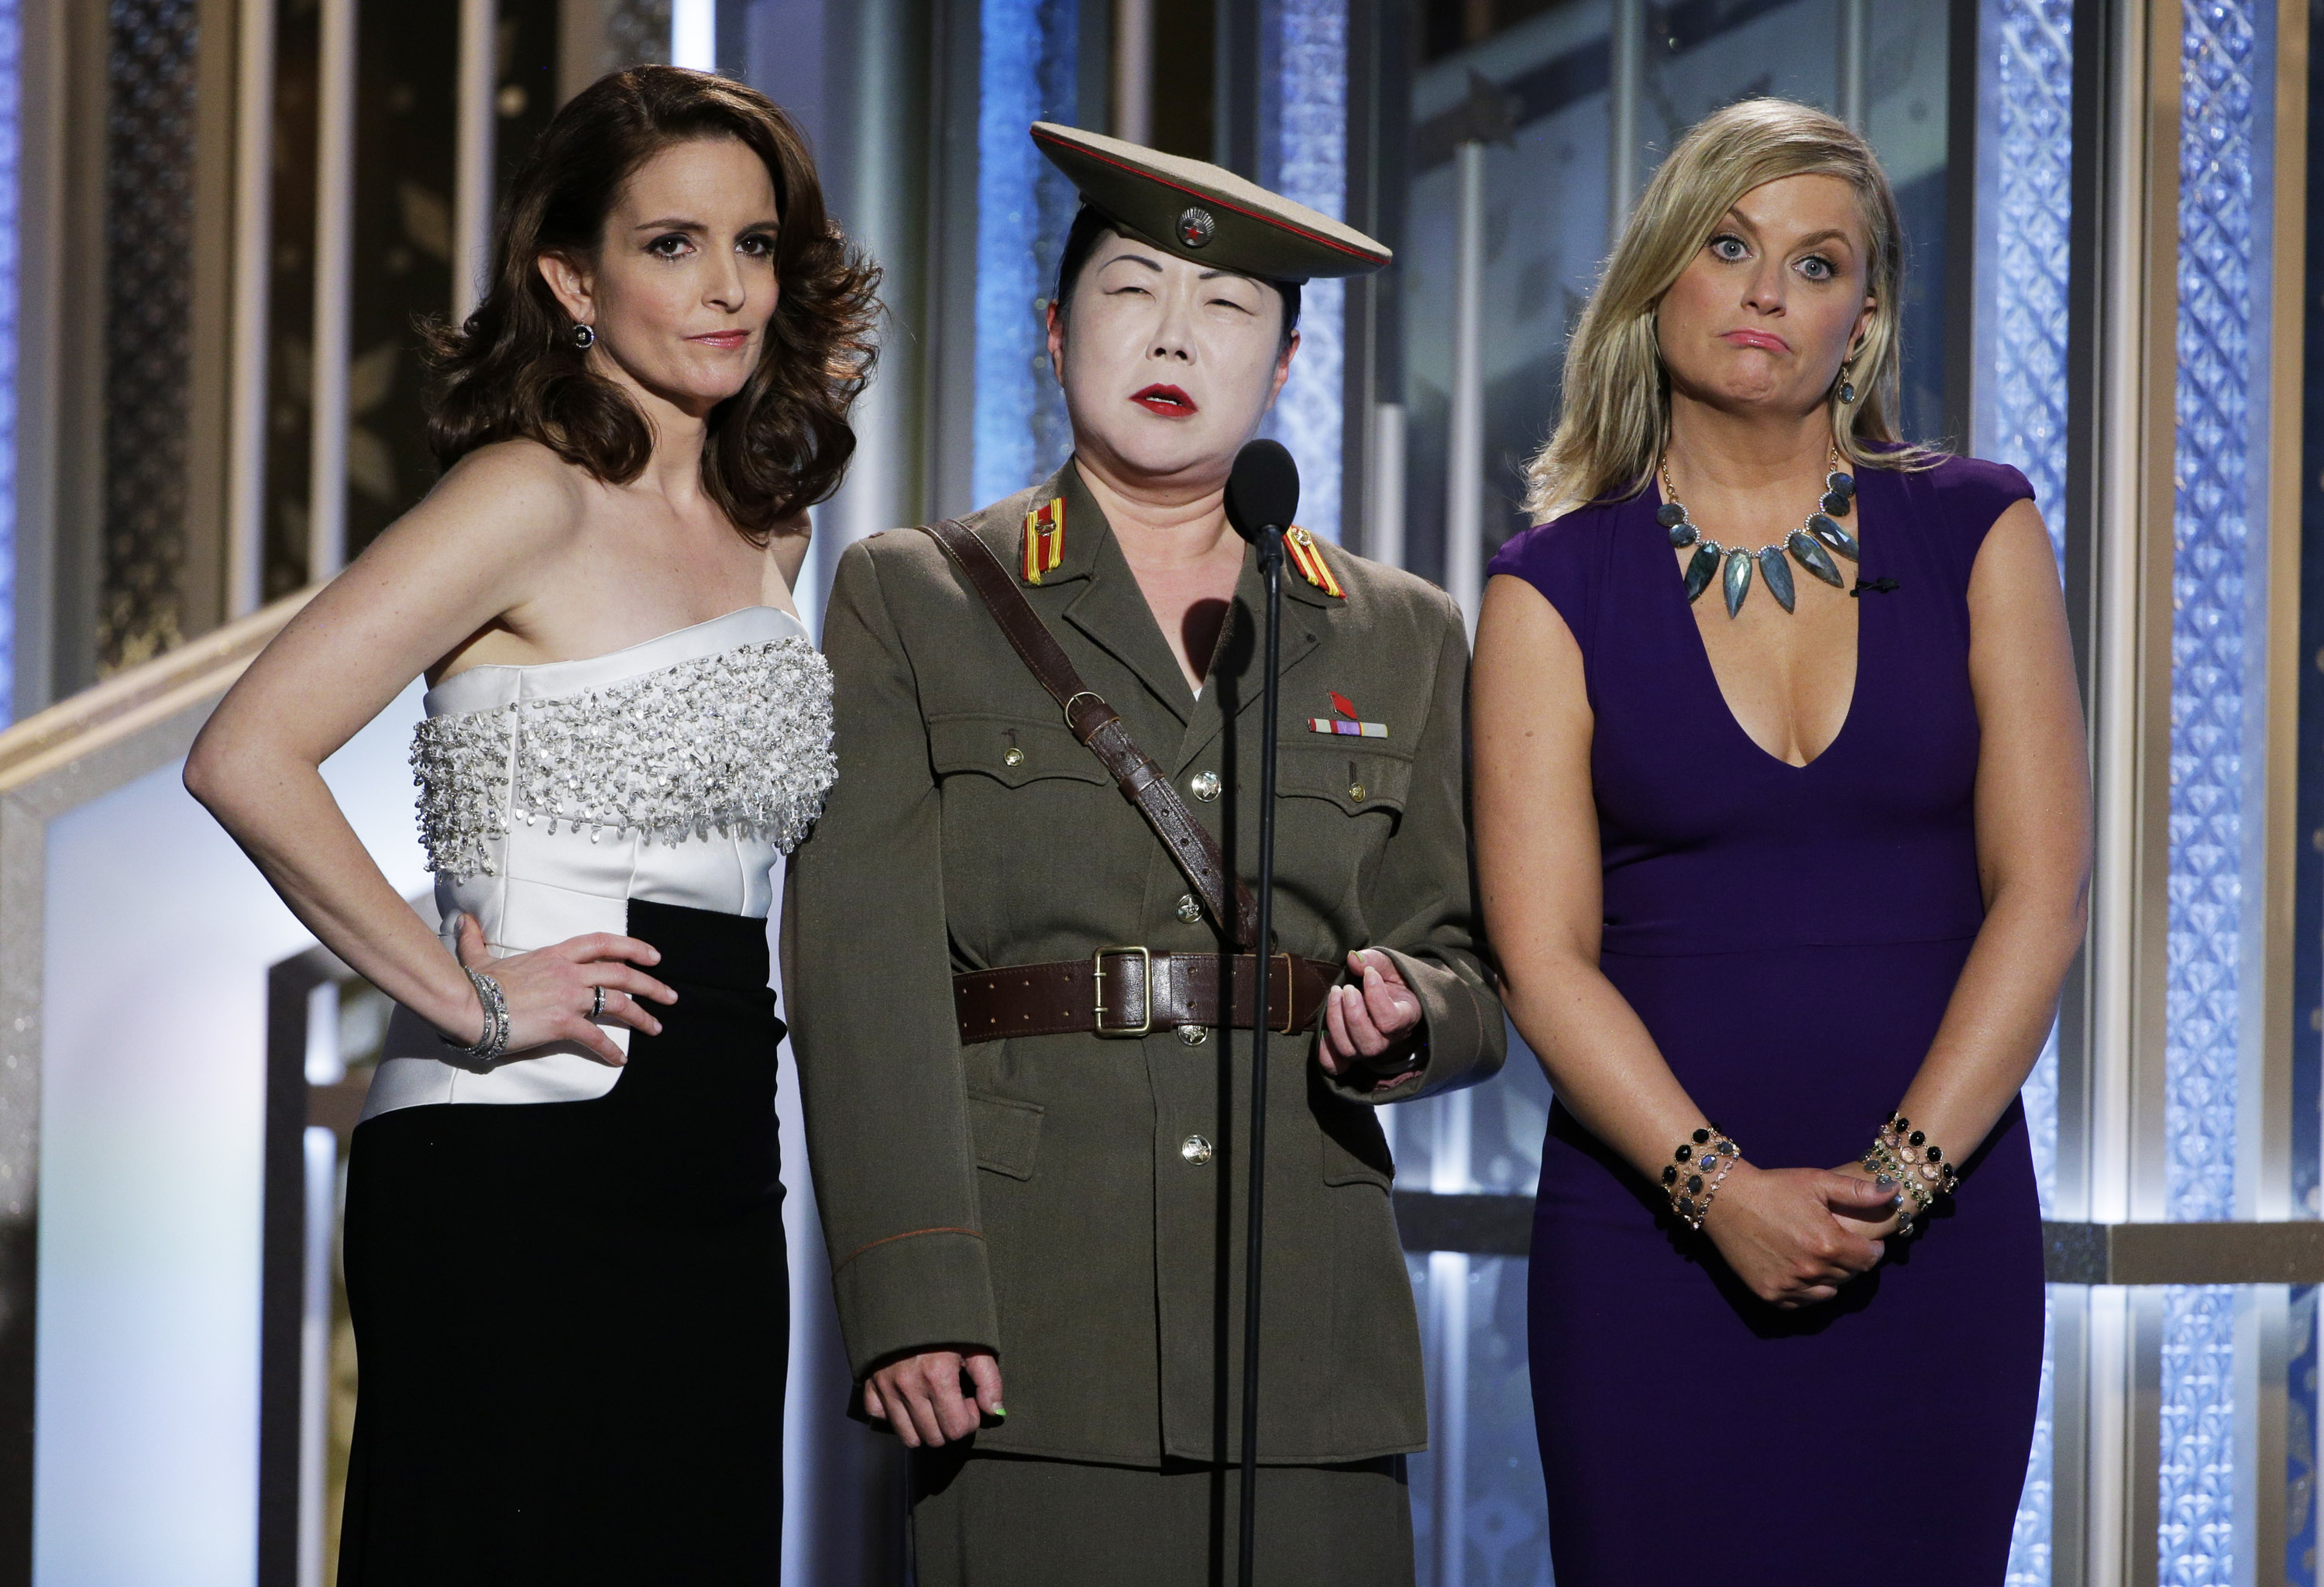 Tina Fey, Margaret Cho and, Amy Poehler speak onstage during the 72nd Annual Golden Globe Awards.